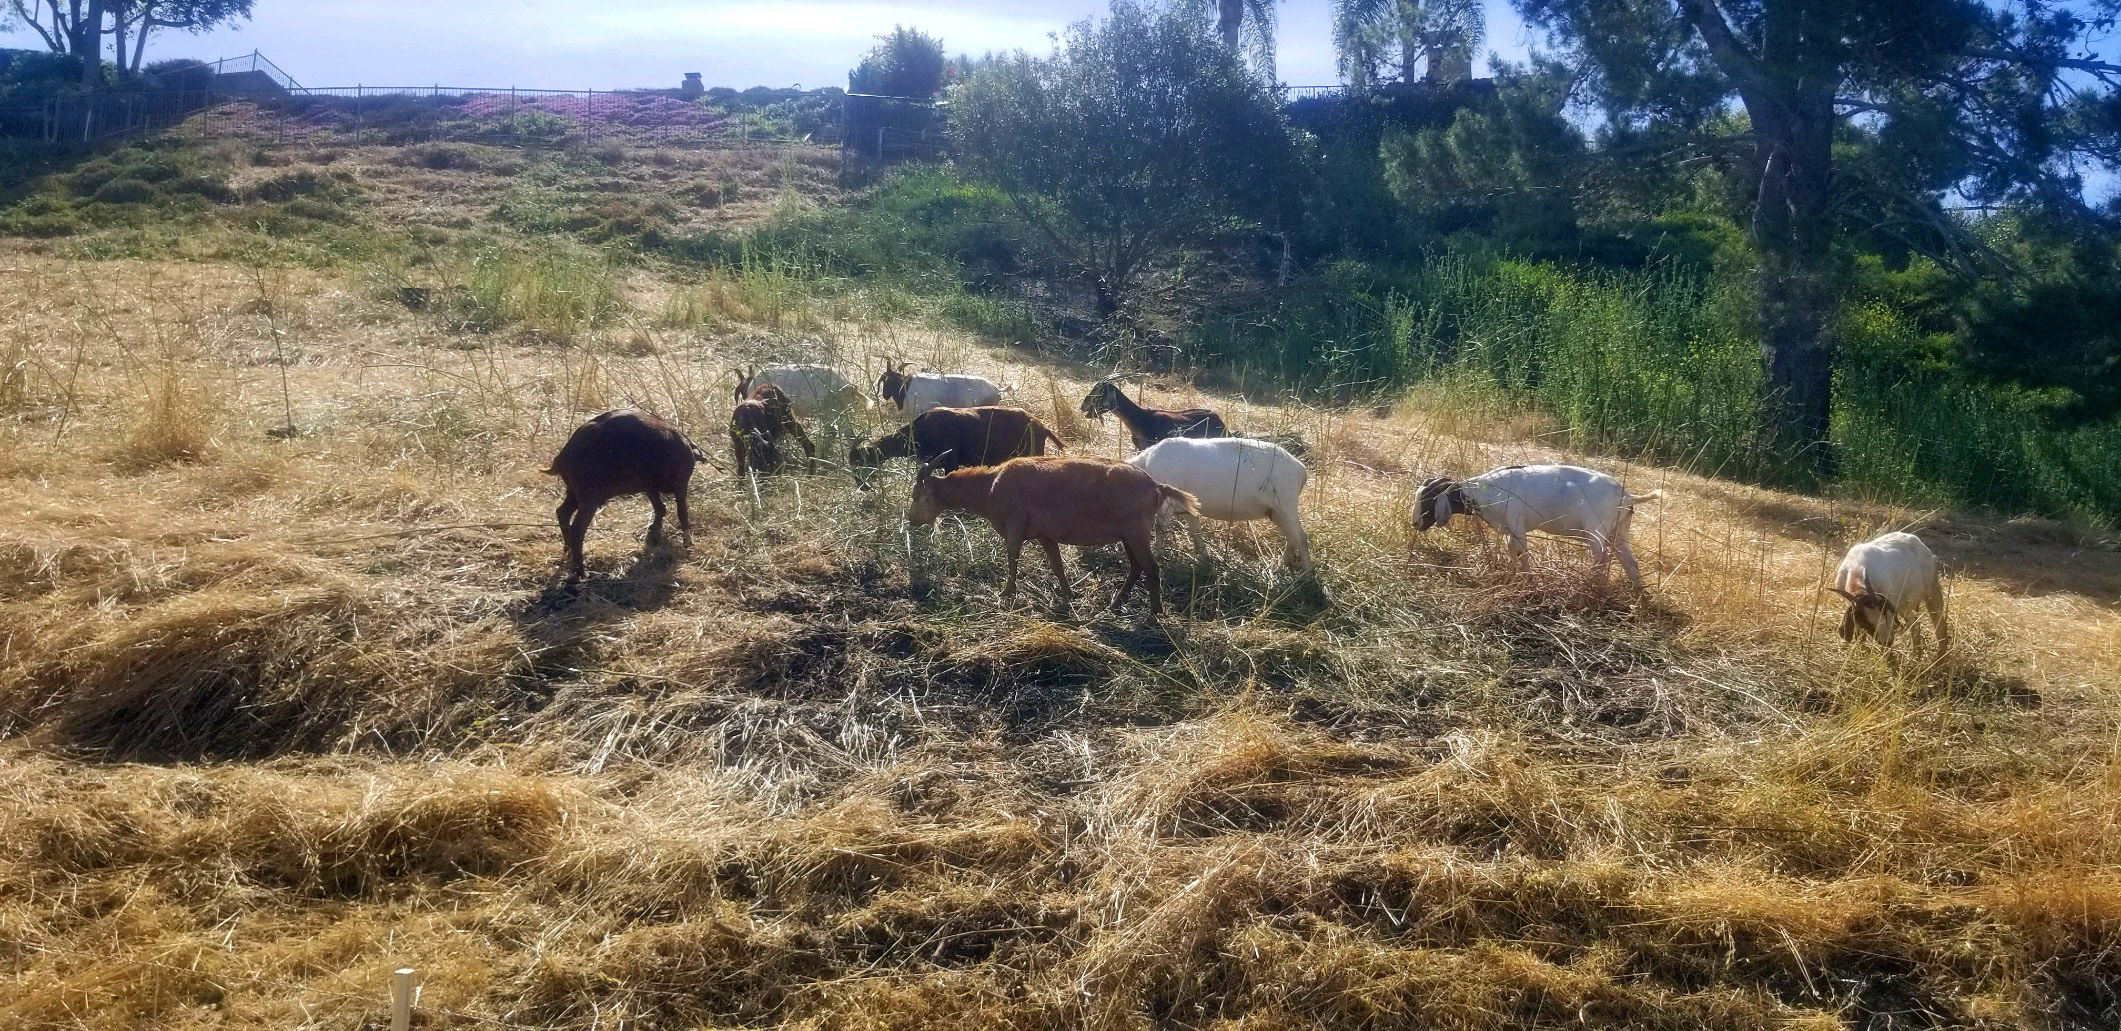 Goats for Grazing